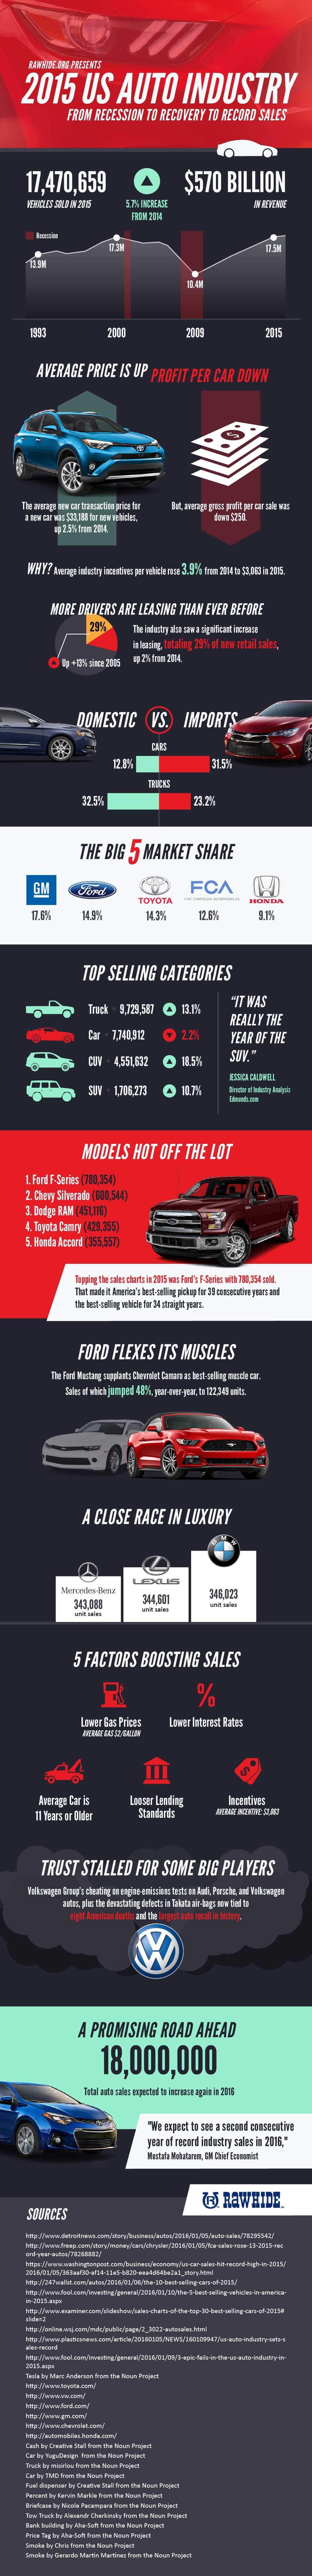 2015 Auto Industry: Recession to Recovery to Record Sales #Infographic